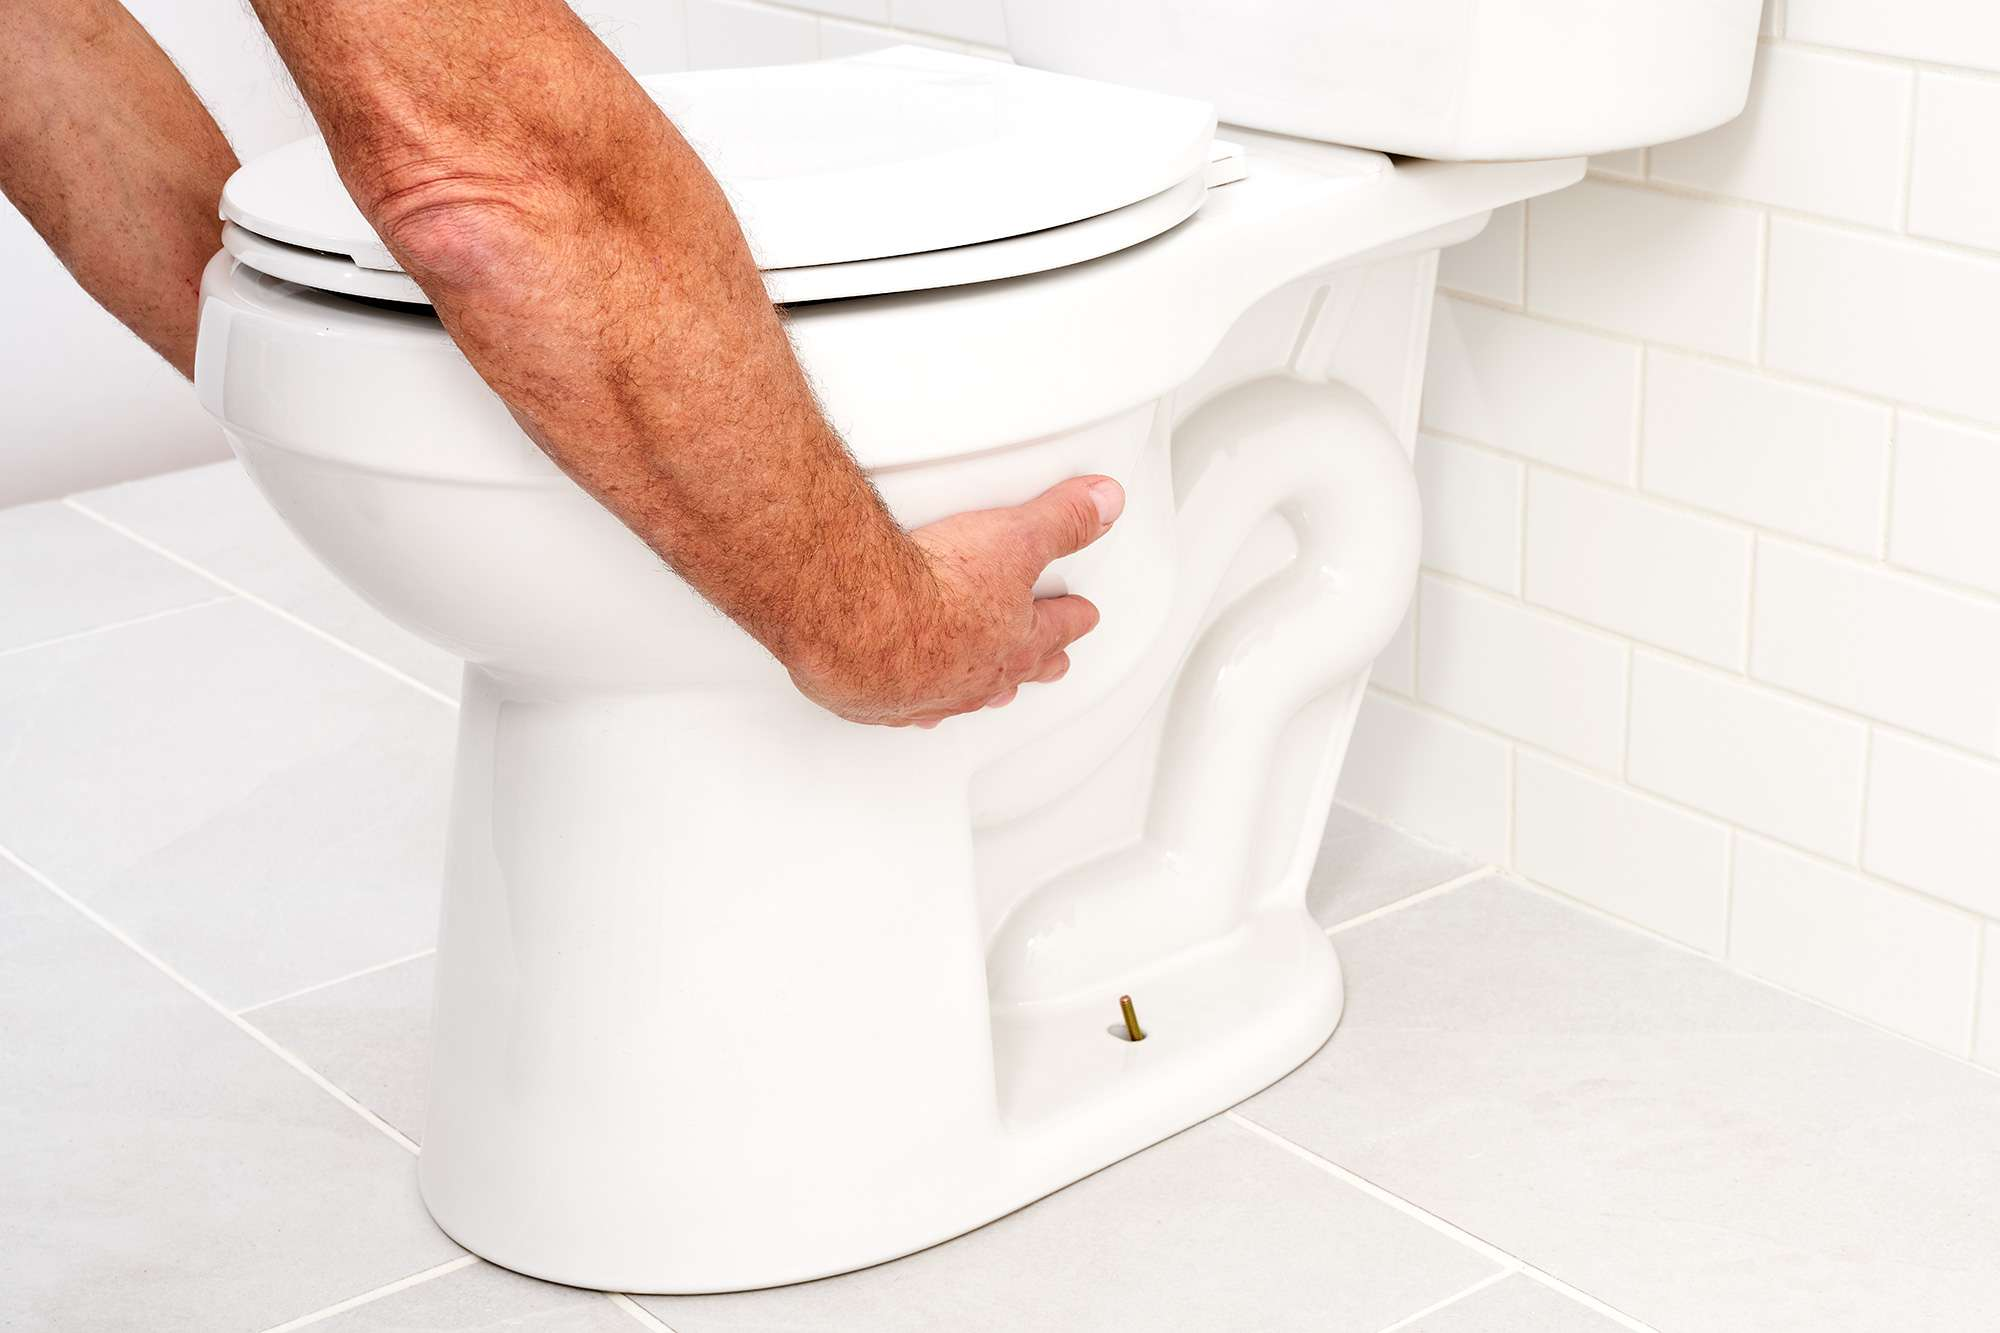 Toilet pulled from floor while holding each side of bowl